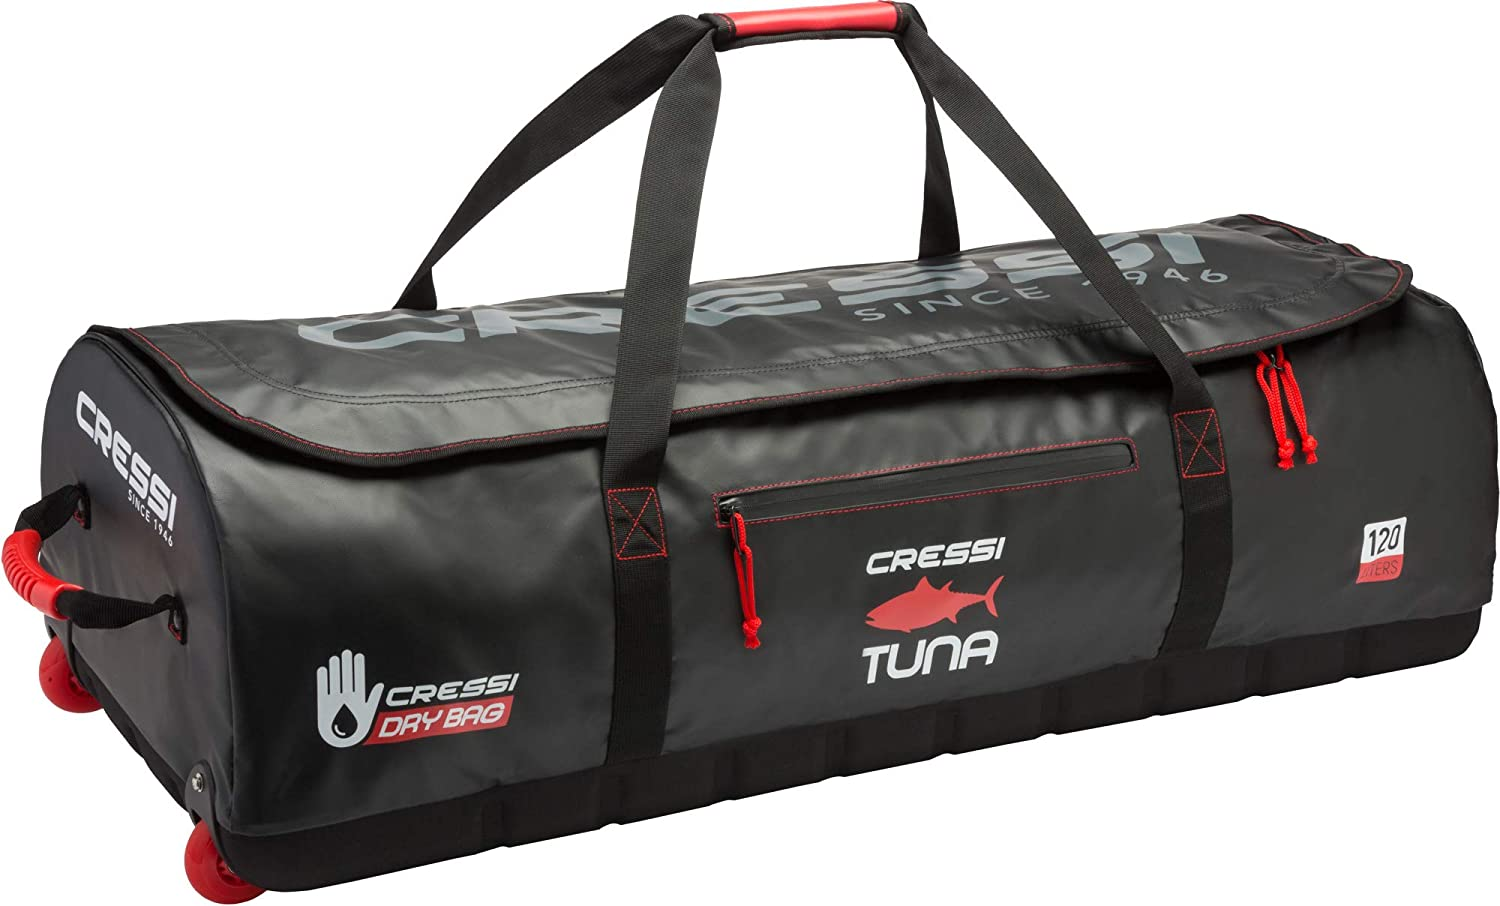 Image of Cressi High-Capacity Wheeled Bag | Water Resistant | 120 Liters Capacity | Ideal for Scuba Diving and Water Sports Equipment | Tuna: Designed in Italy Dry Bags